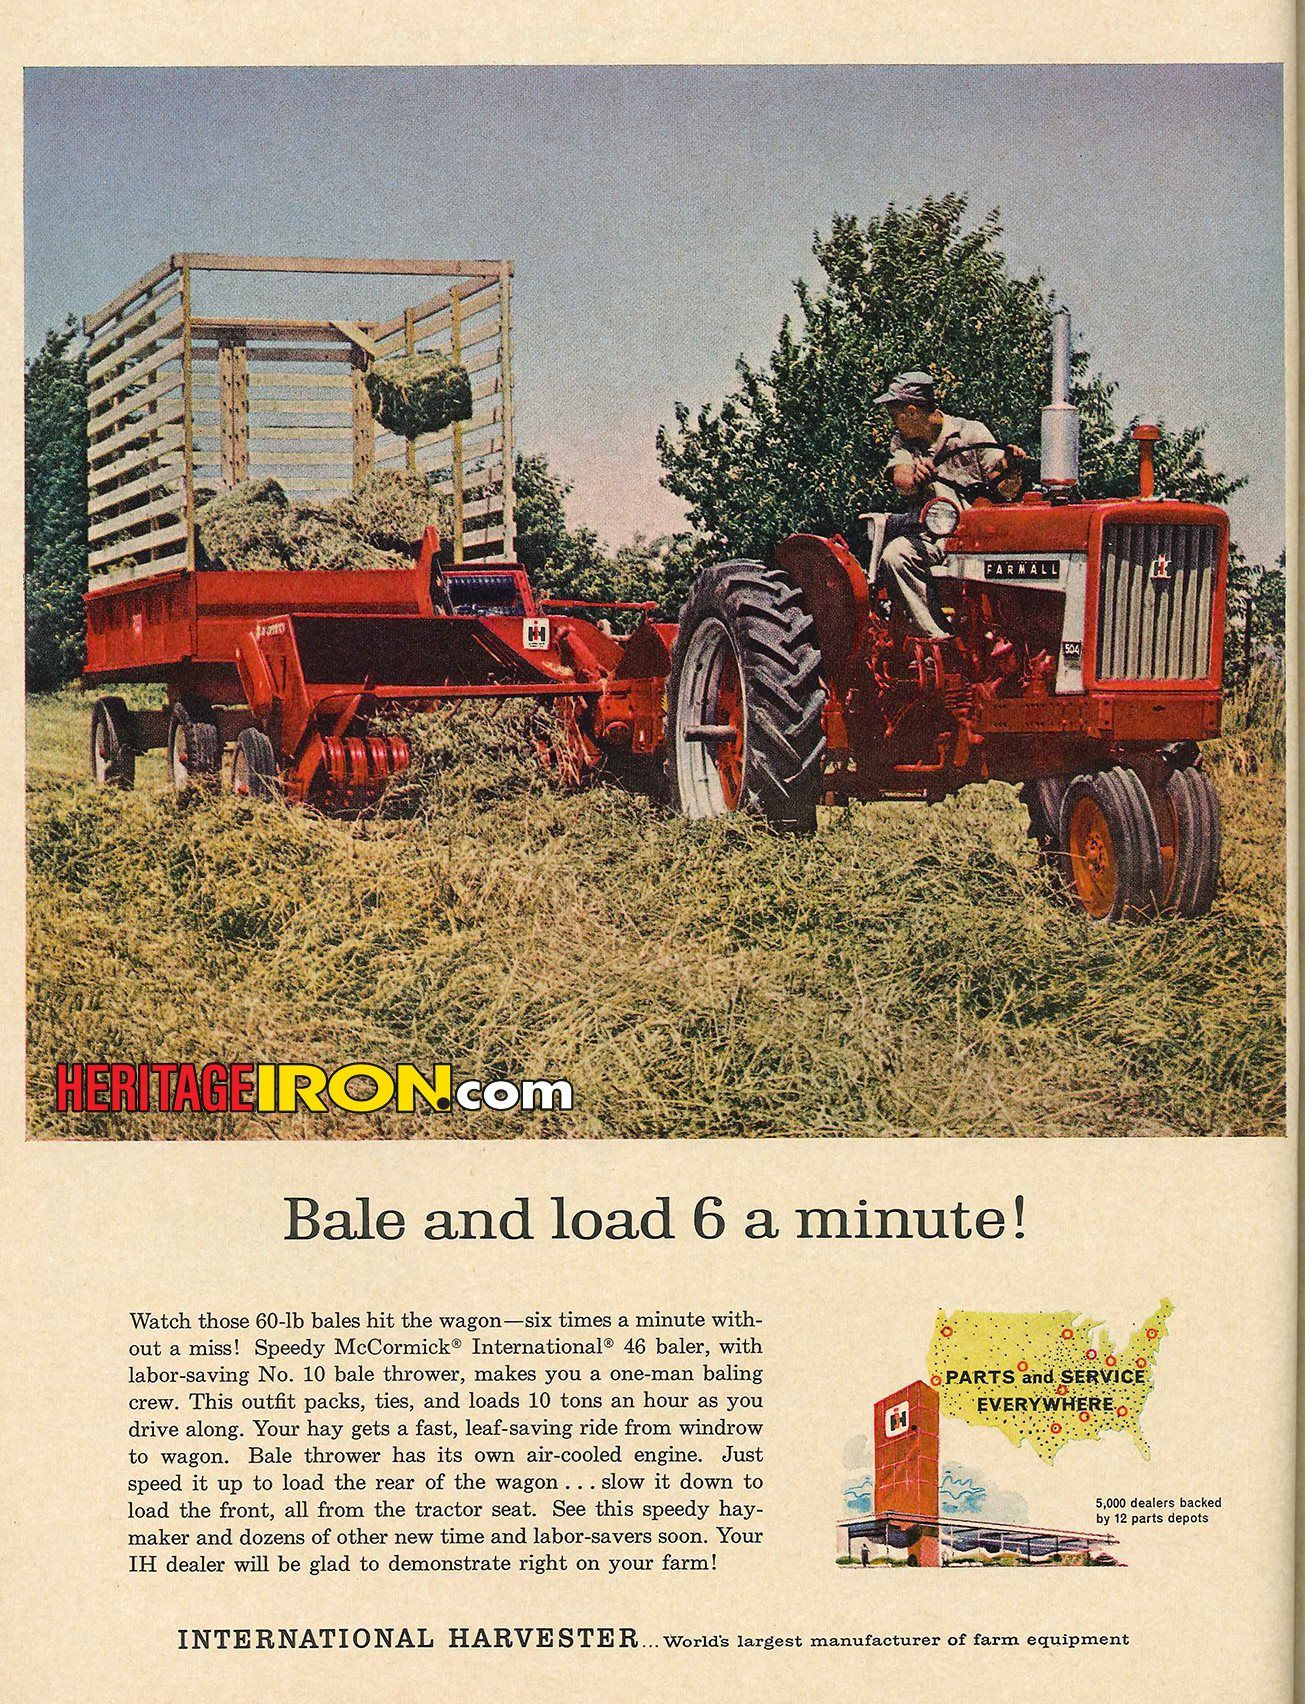 The speedy McCormick International 46 baler with the No. 10 bale thrower  makes you a one-man baling crew! (Farm Quarterly - Summer 1962)  #VintageAdWednesday